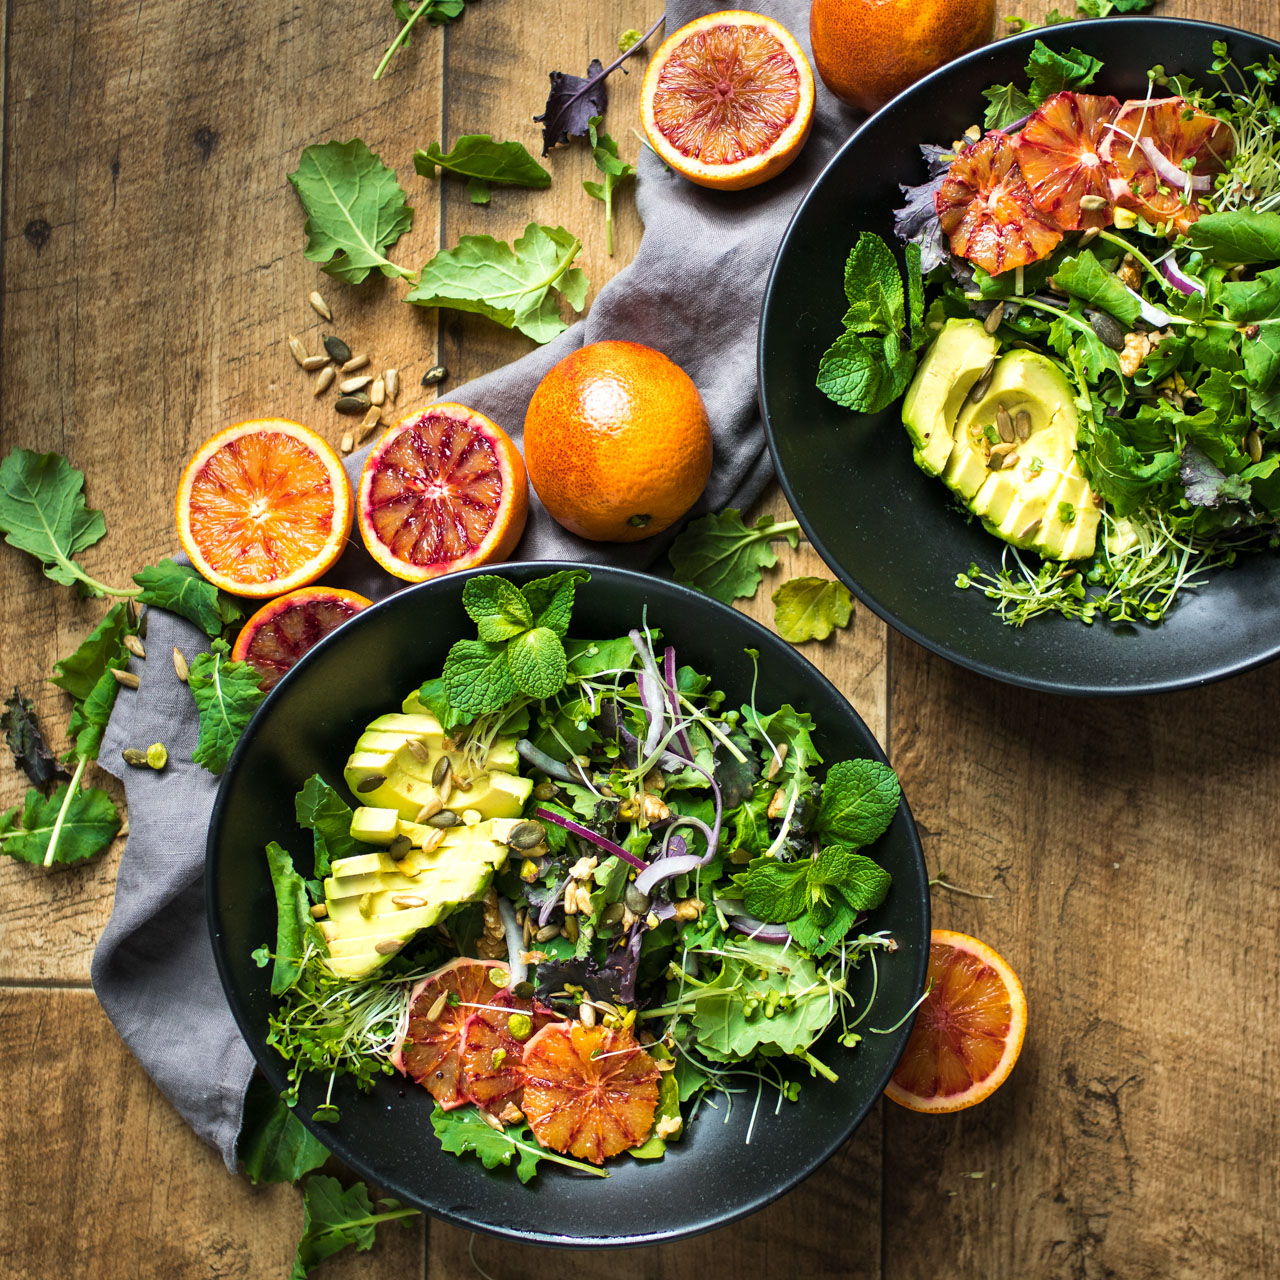 Blood Orange Salad With A Balsamic Vinegar Dressing A Food Photography Video Lauren Caris Cooks